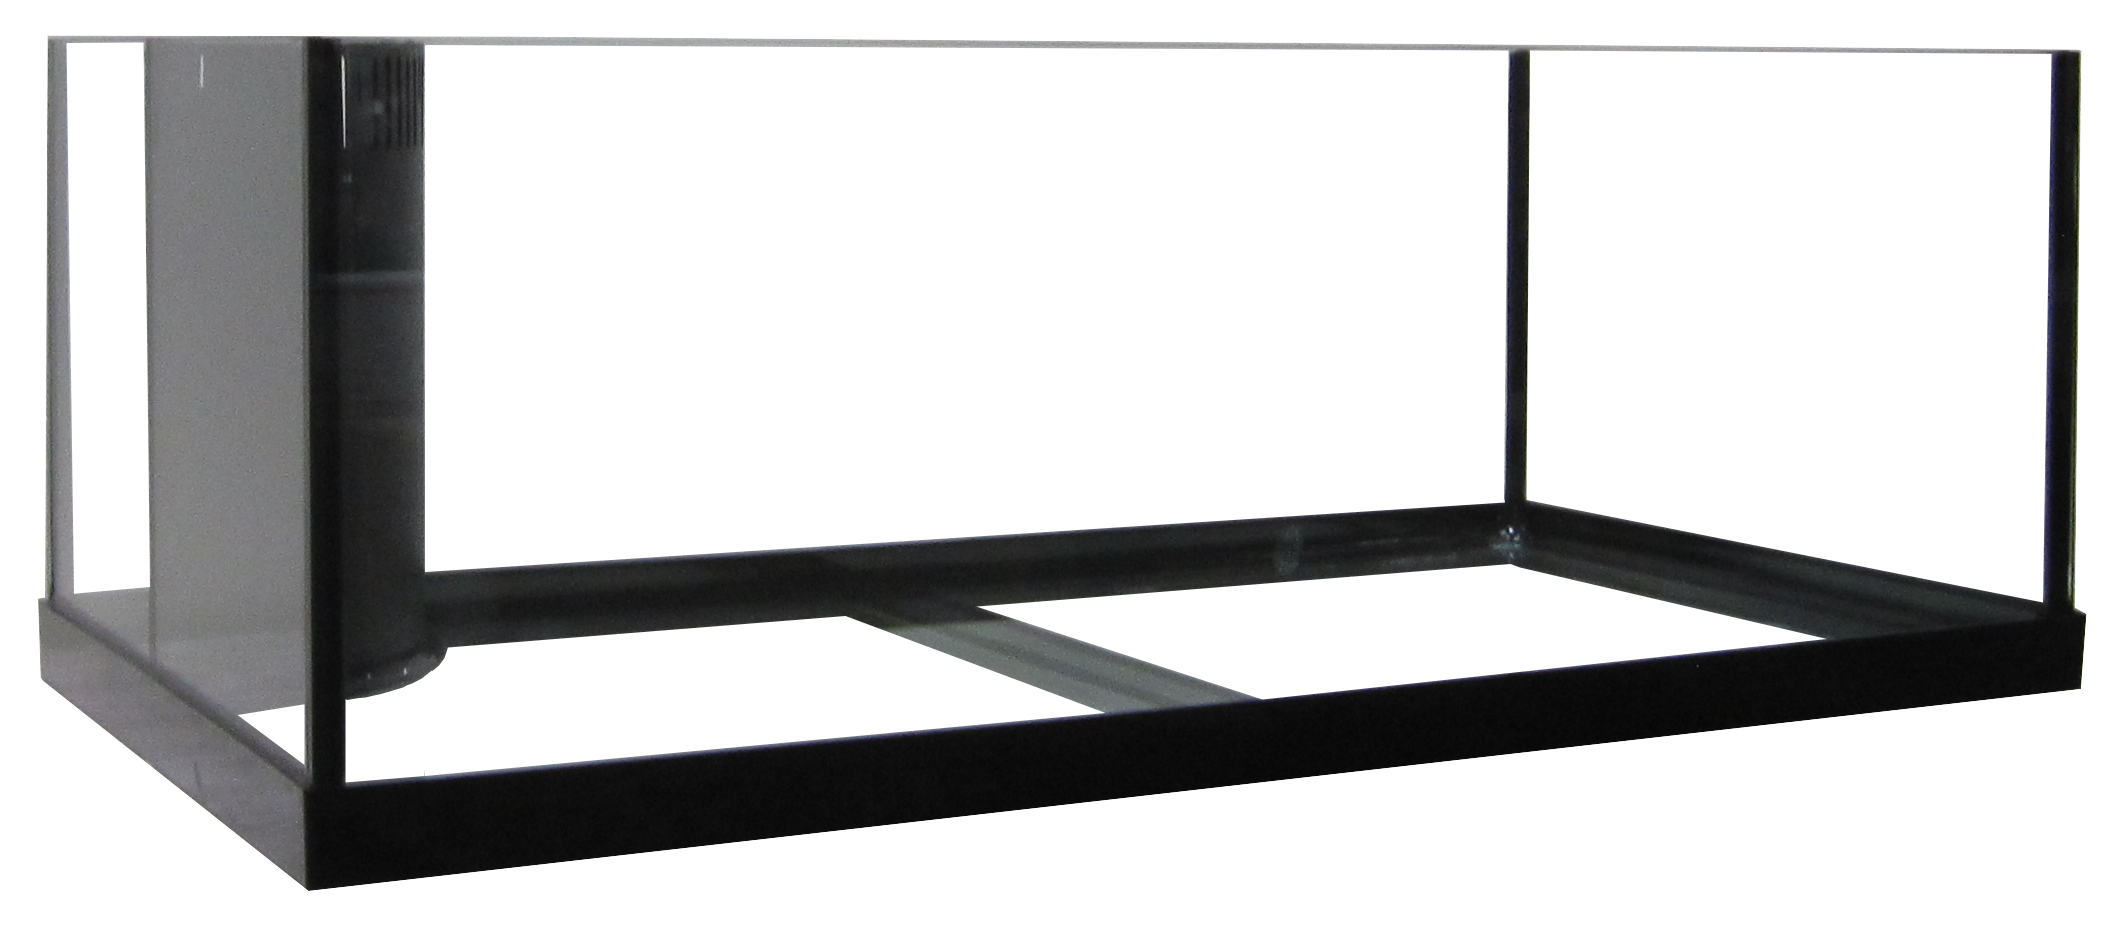 "34 Rimless Frag Reef Ready Aquarium - 36x18x12""   SKU#:AM13634  UPC#: 7-49729-13634-7  Product Dimension: 36.5""x18.5""x13""  Capacity: Approximately 34 gallons  Weight: 56.25 lbs"